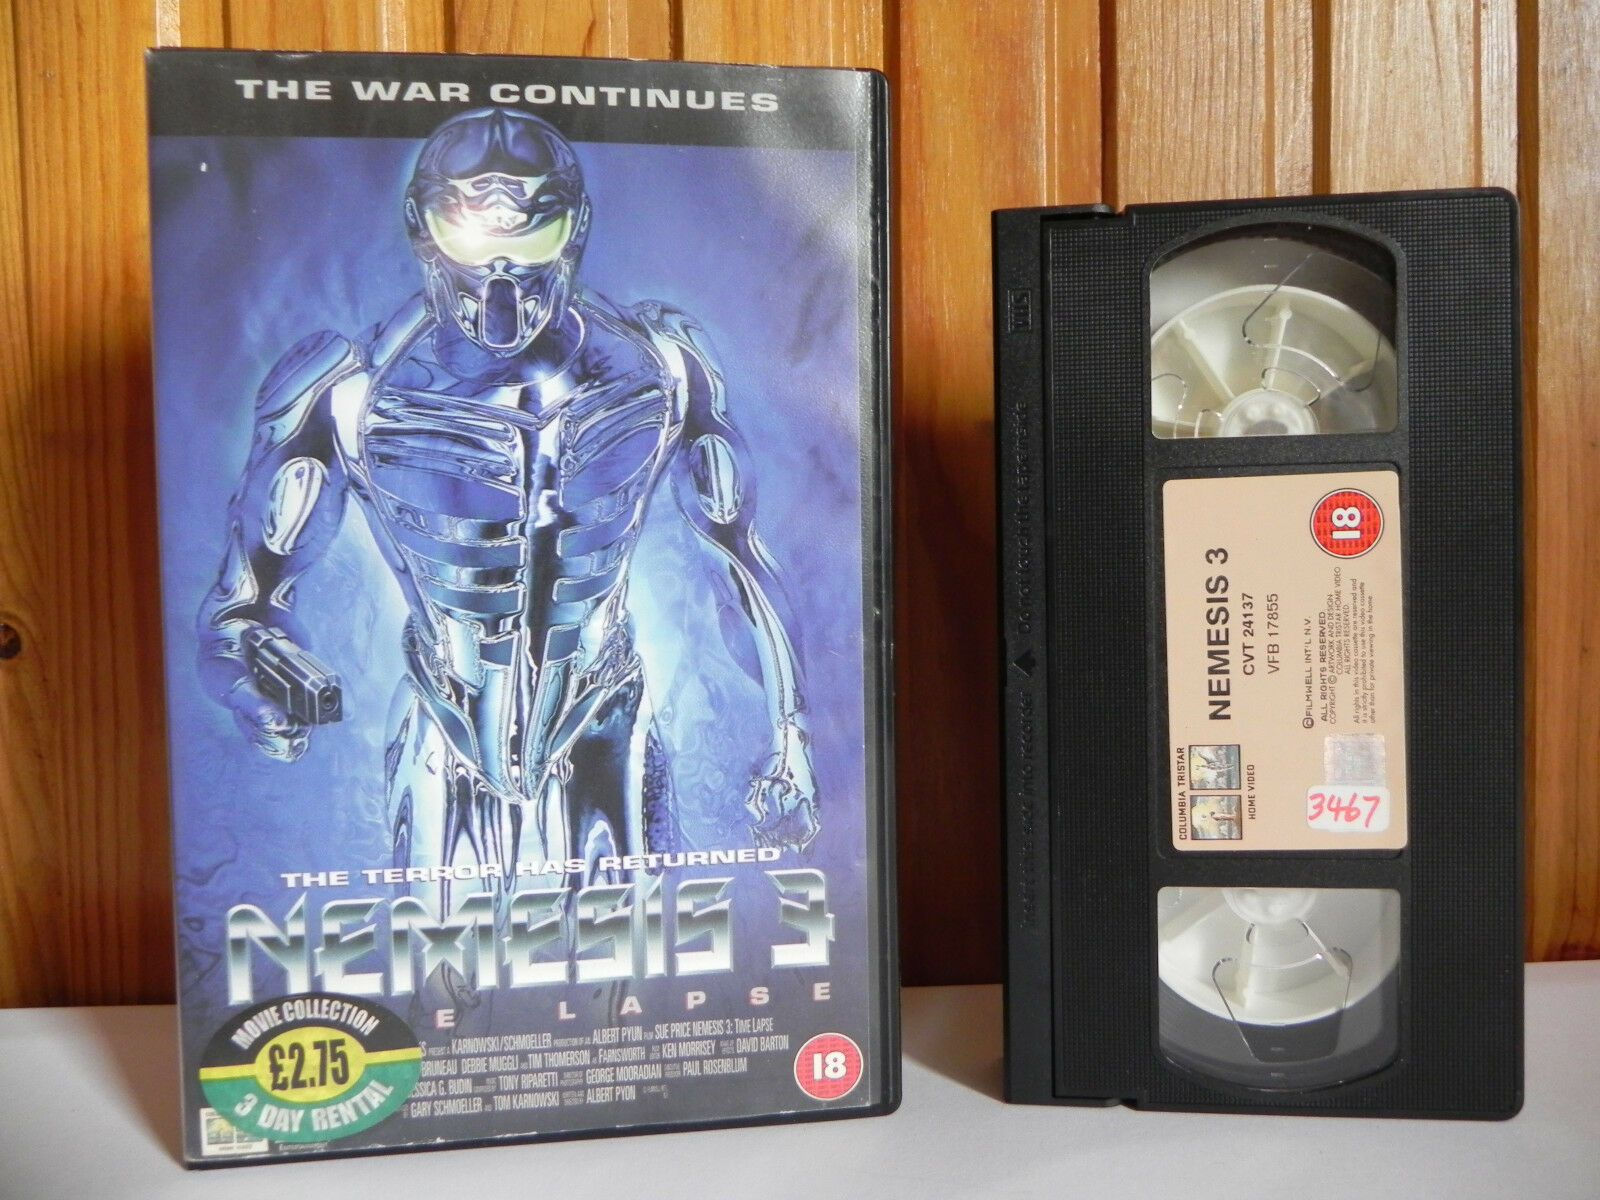 Nemesis 3: Time Lapse - Columbia Tristar - Sci-Fi - Action - Large Box - Pal VHS